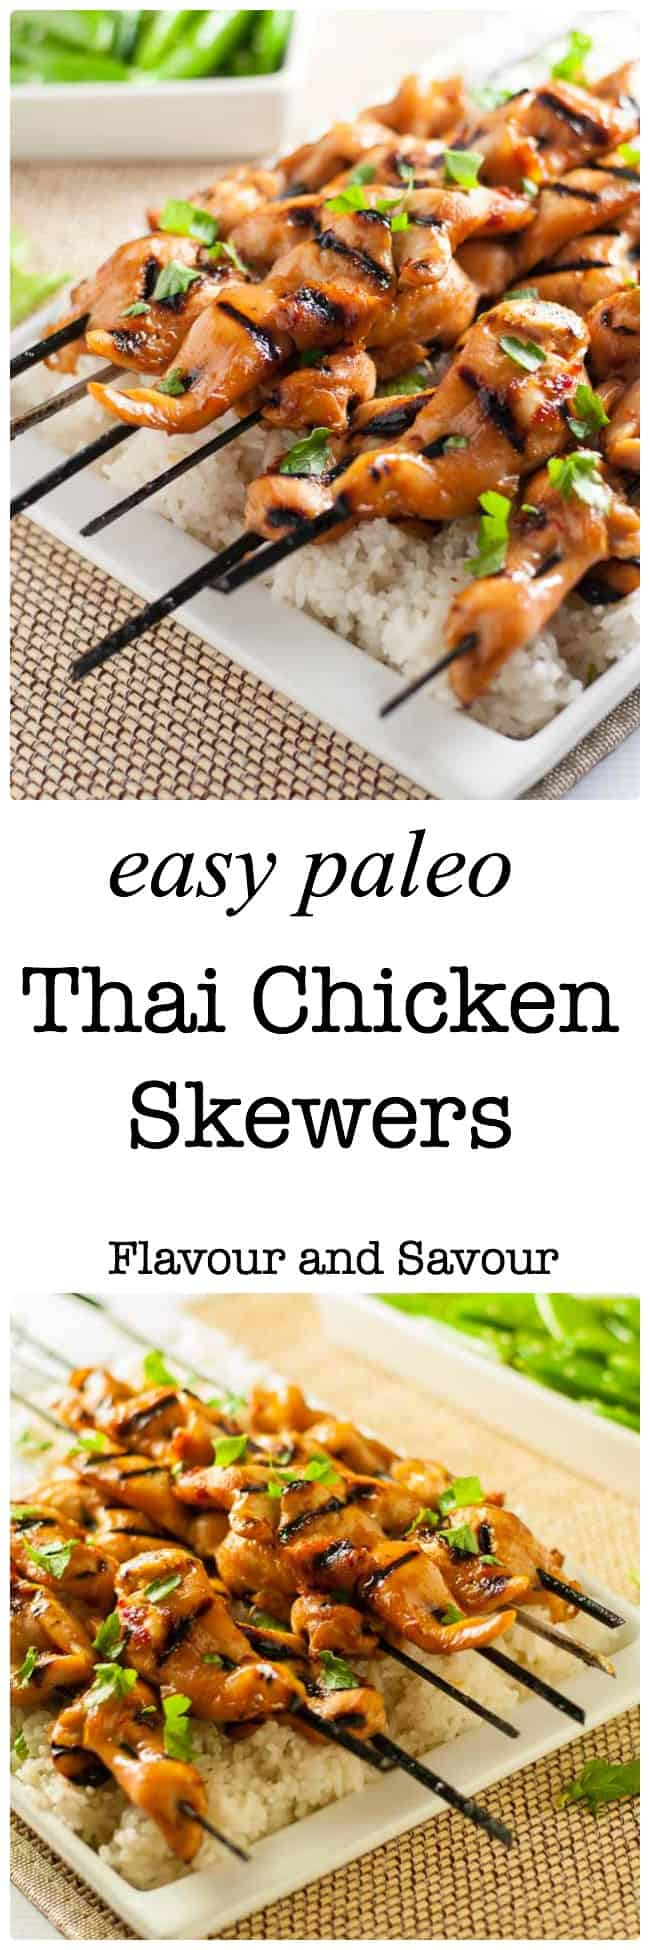 These easy Paleo Thai Chicken Skewers are sweet, spicy and succulent. You can use skinless, boneless chicken breasts, chicken tenders, or chicken thighs in this recipe. They all work beautifully, resulting in flavourful kabobs, fresh from the grill.